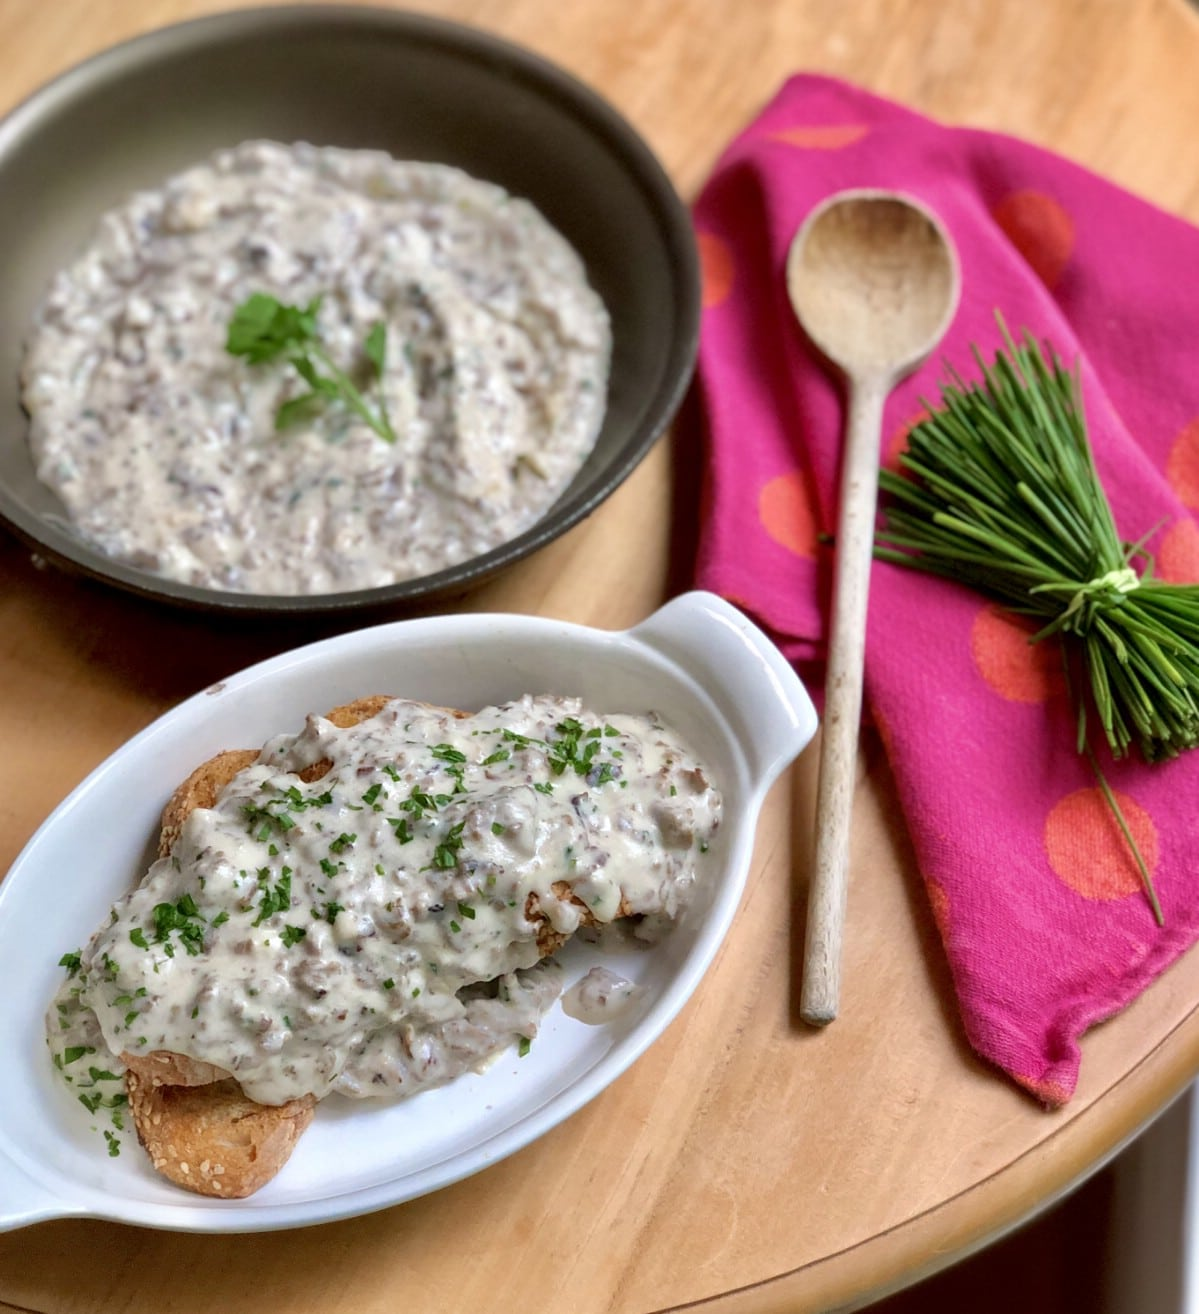 Skillet with chipped beef by serving dish